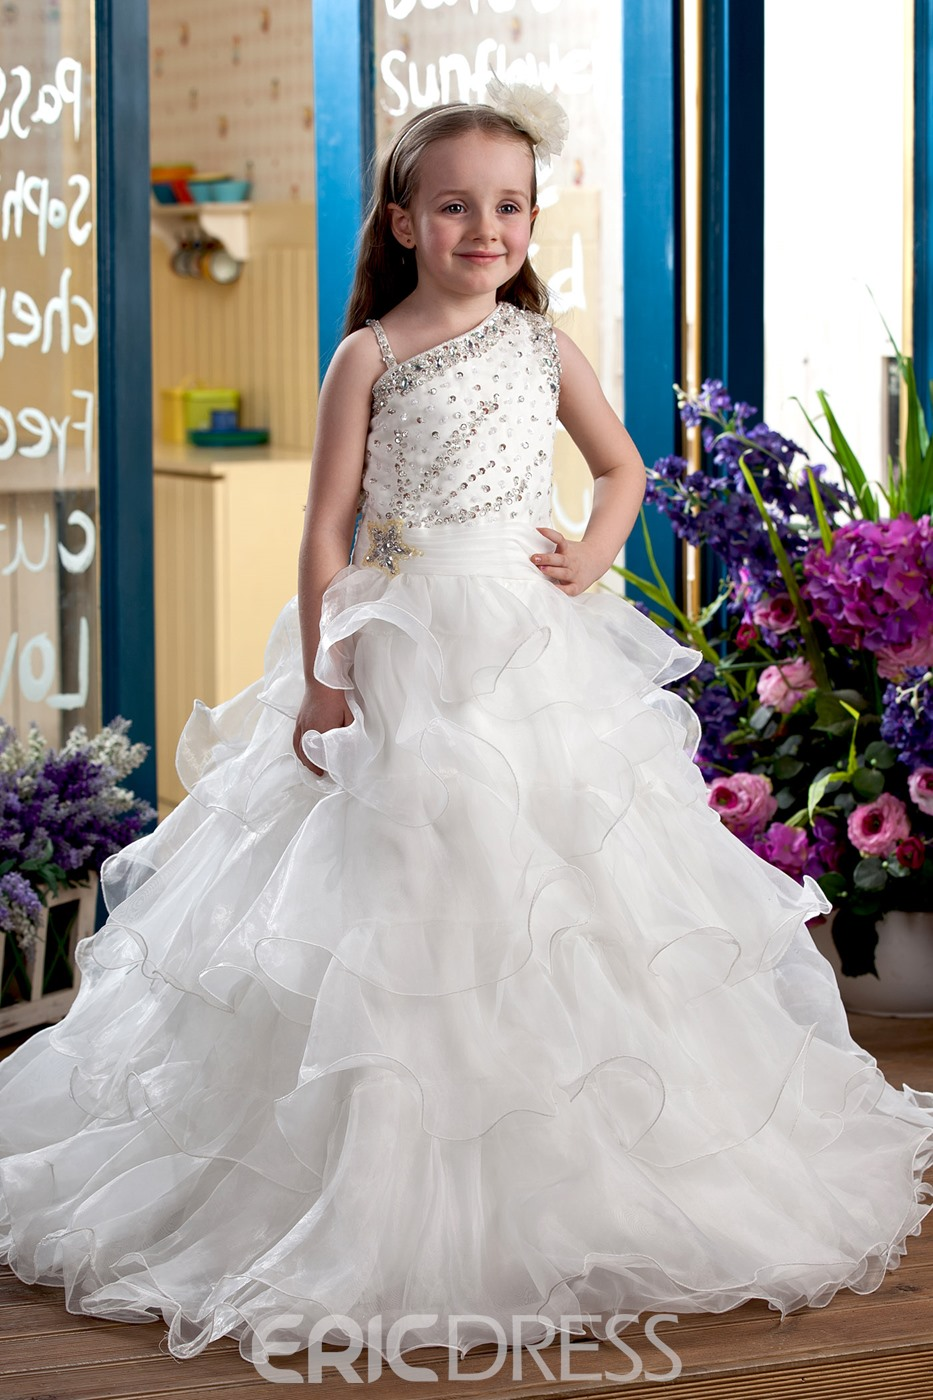 Elegant Ball Gown Floor-Length Tiered Flower Girl Dress